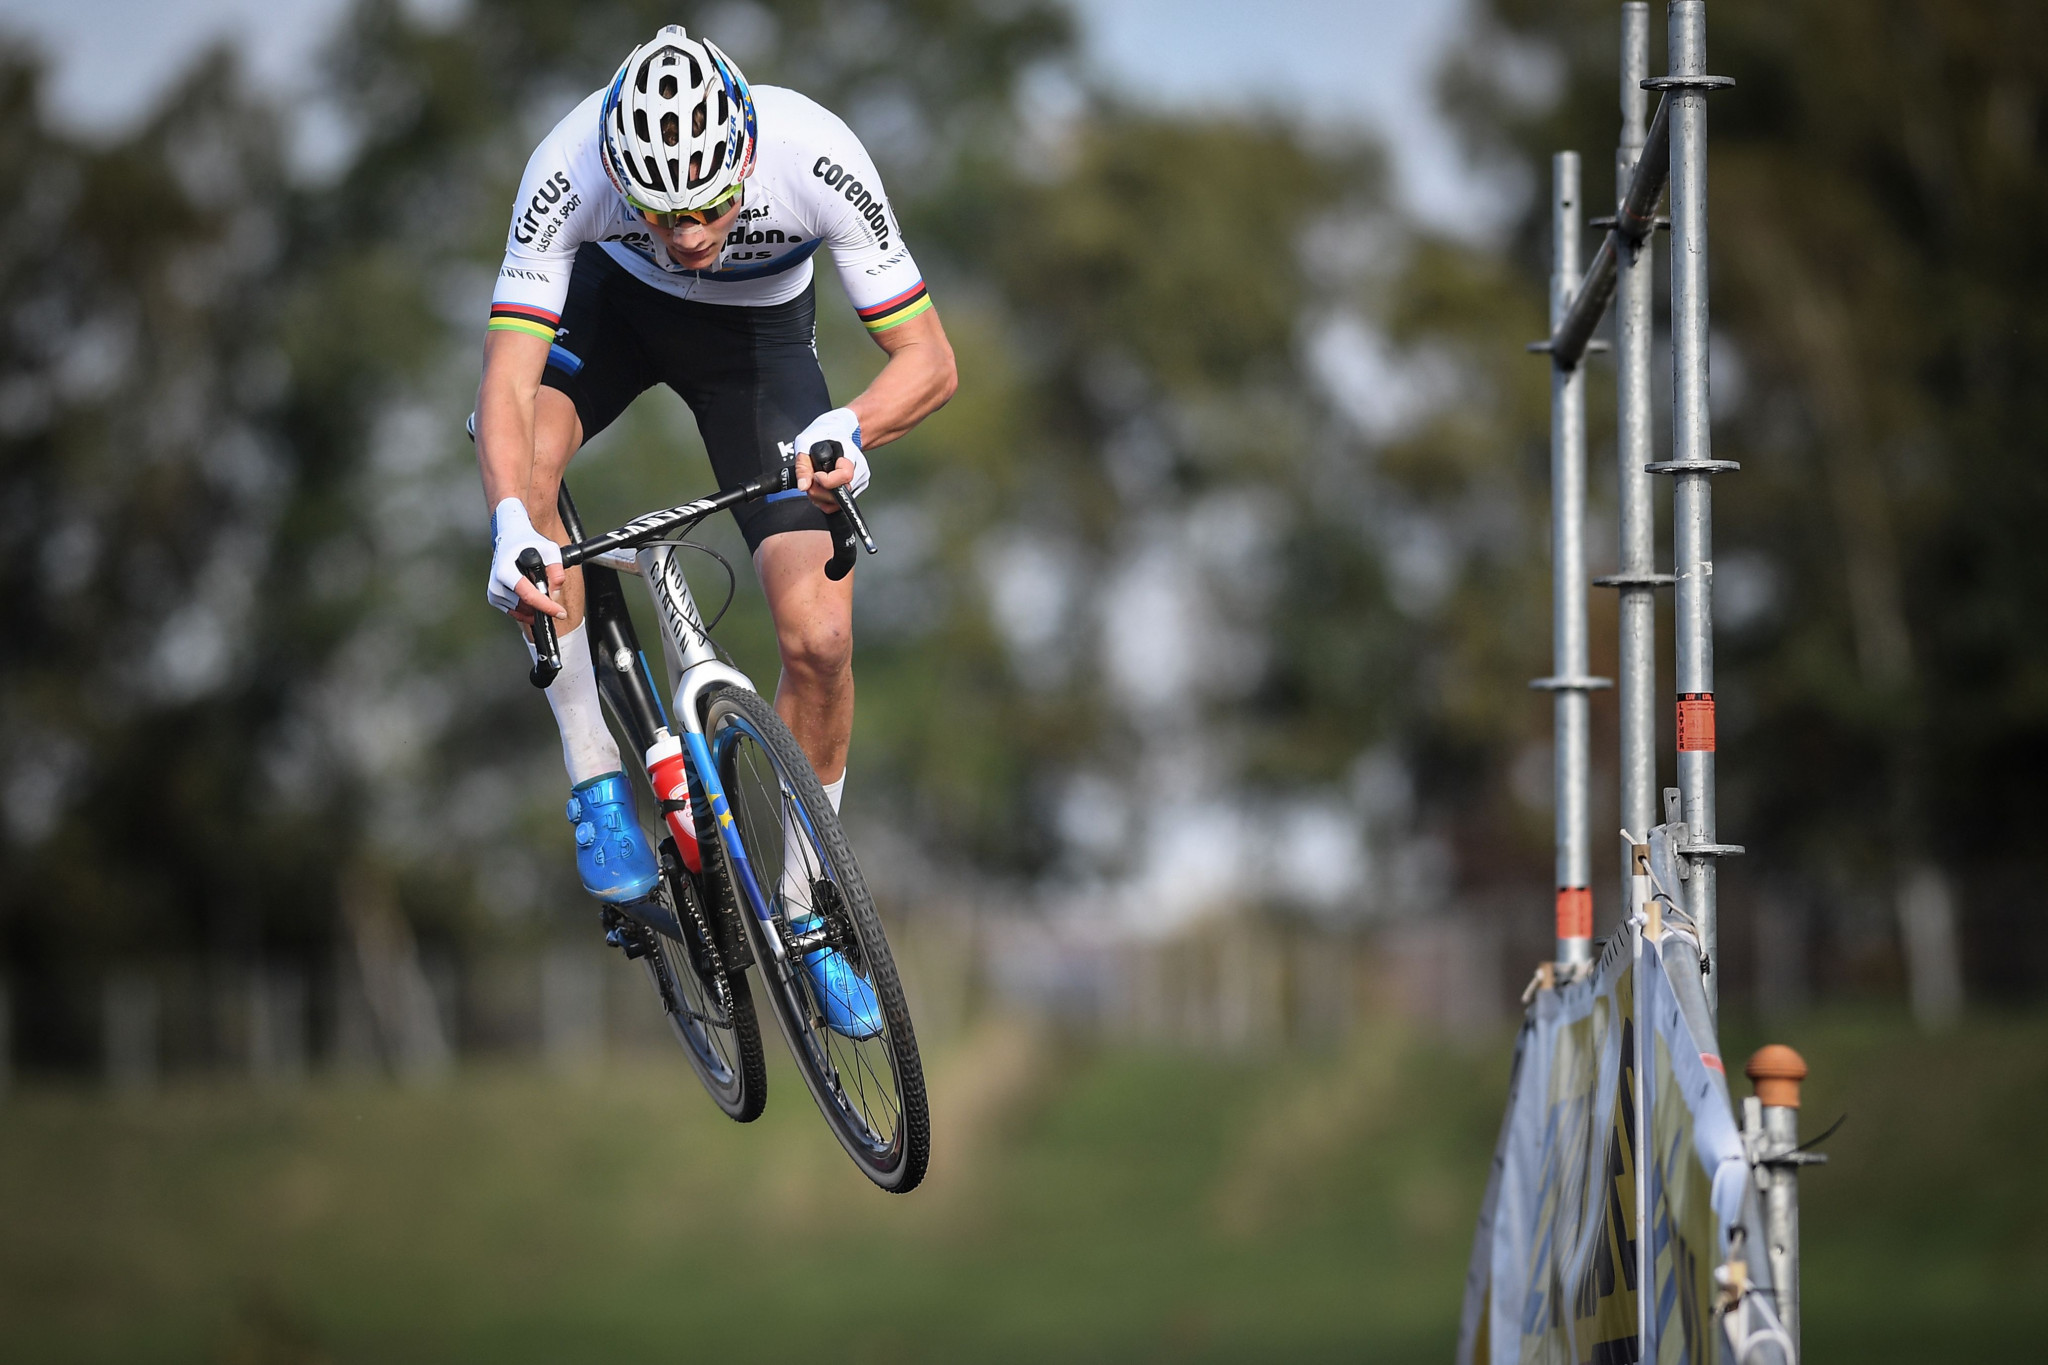 World champions to battle it out at Cyclo-Cross European Championships